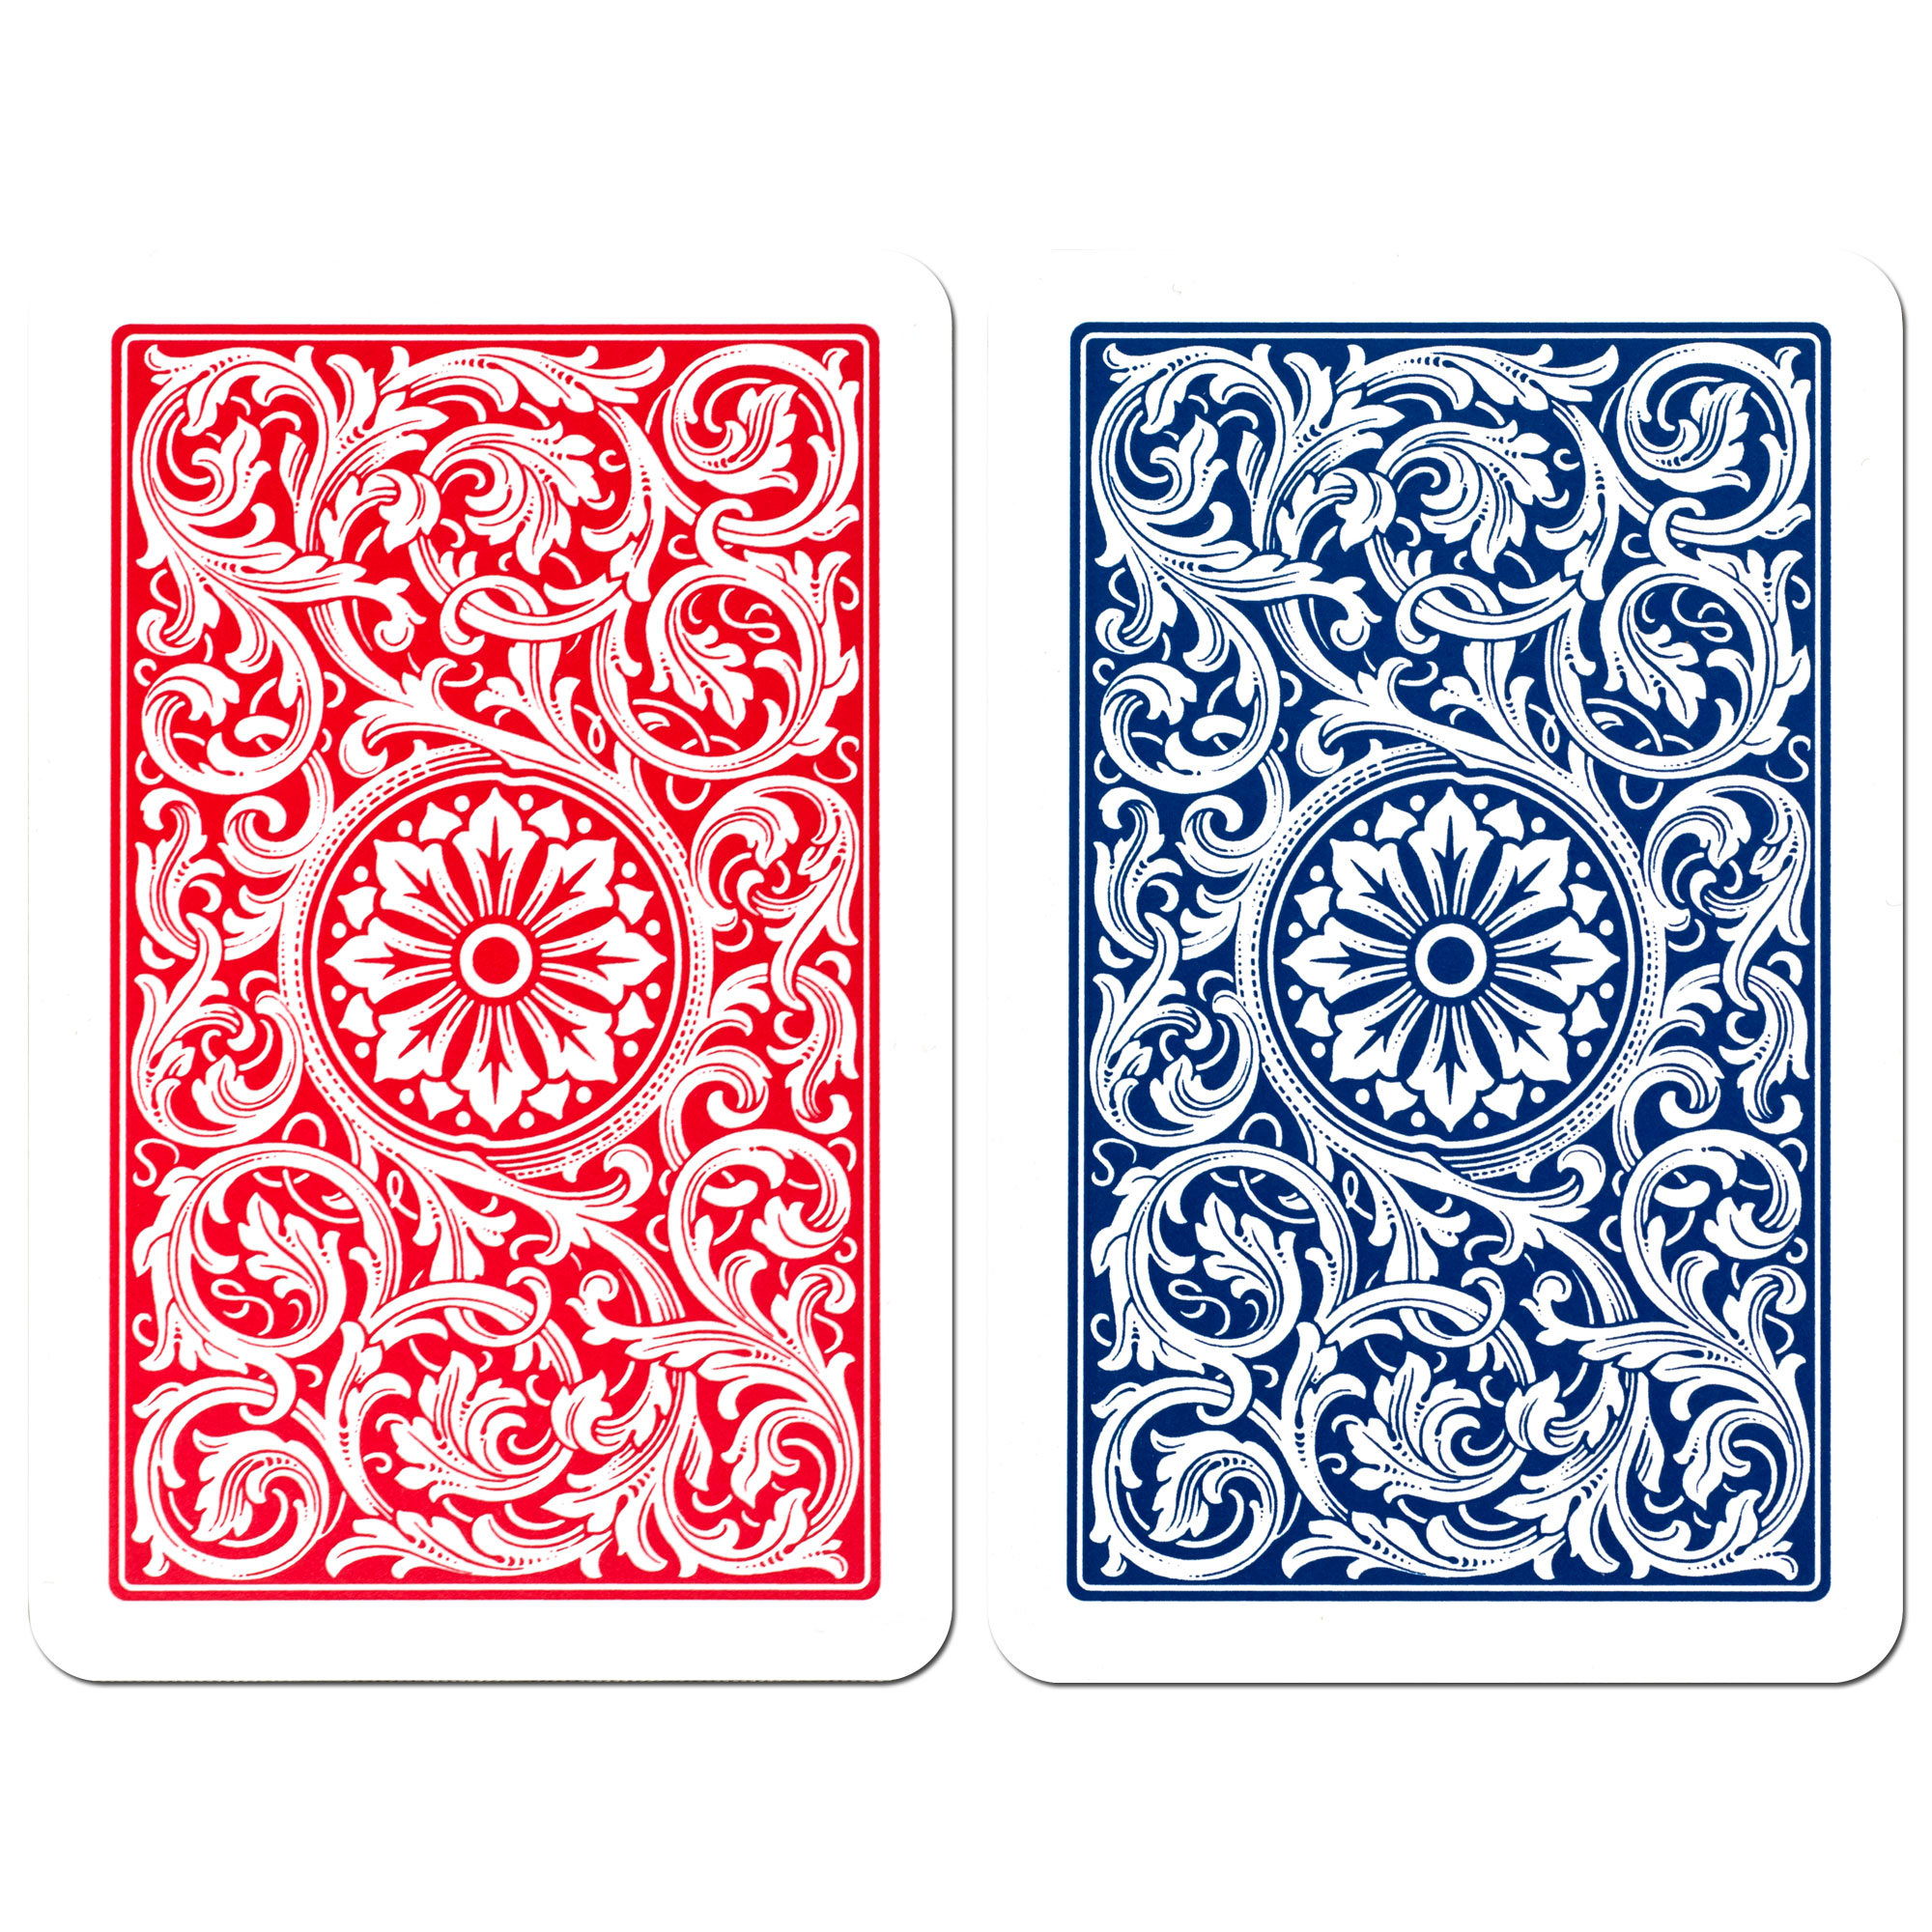 Free Playing Card Back Png, Download Free Clip Art, Free.